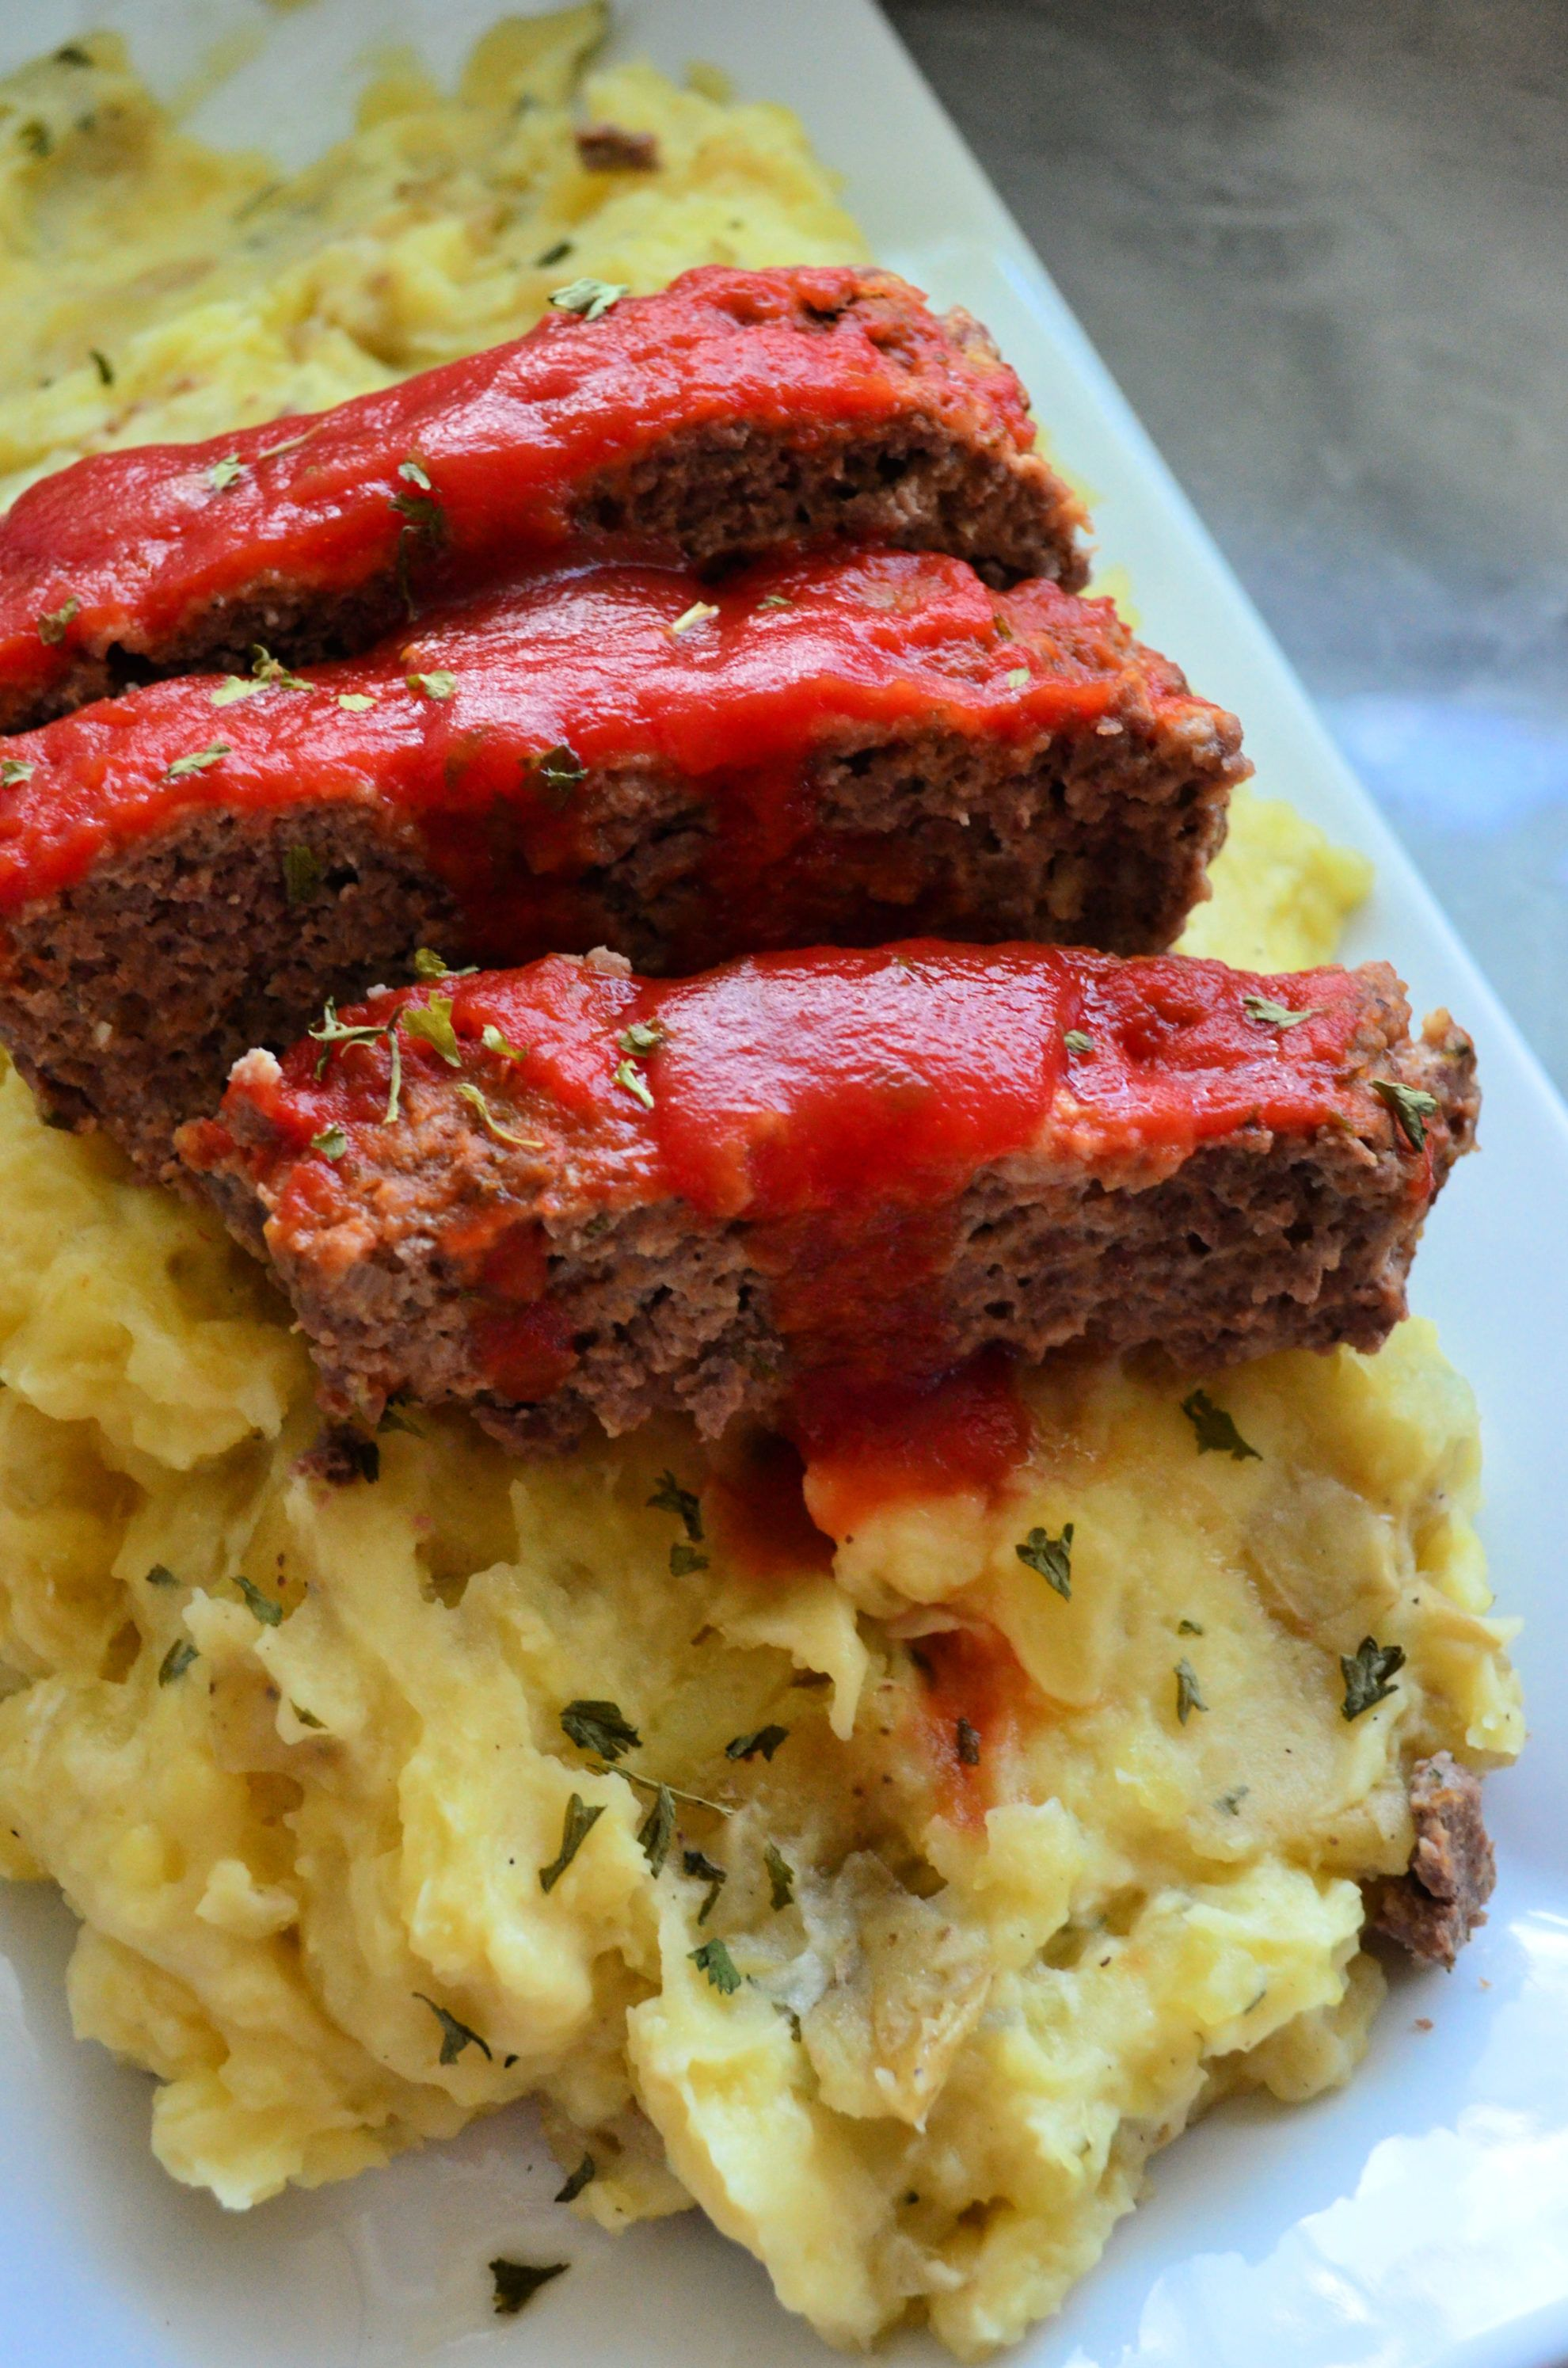 Instant Pot Meatloaf with Garlic Mashed Potatoes - Katie's Cucina #instantpotmashedpotatoes